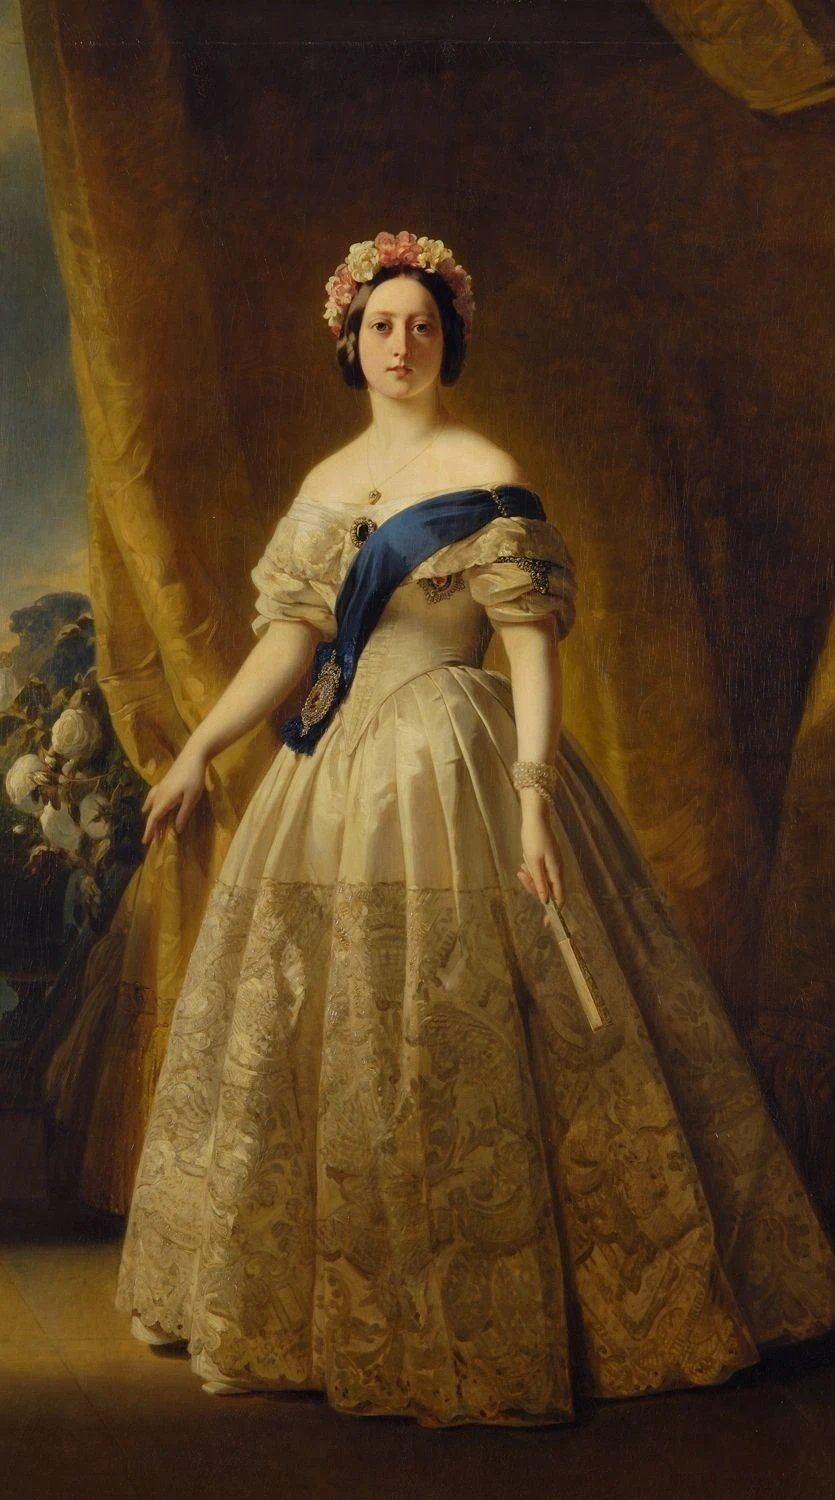 Portrait of Victoria of the United Kingdom I (c.1844). Artist: Franz Xaver Winterhalter Home & Garden > Decor > Artwork > Posters, Prints, & Visual Artwork ArtToyourlife